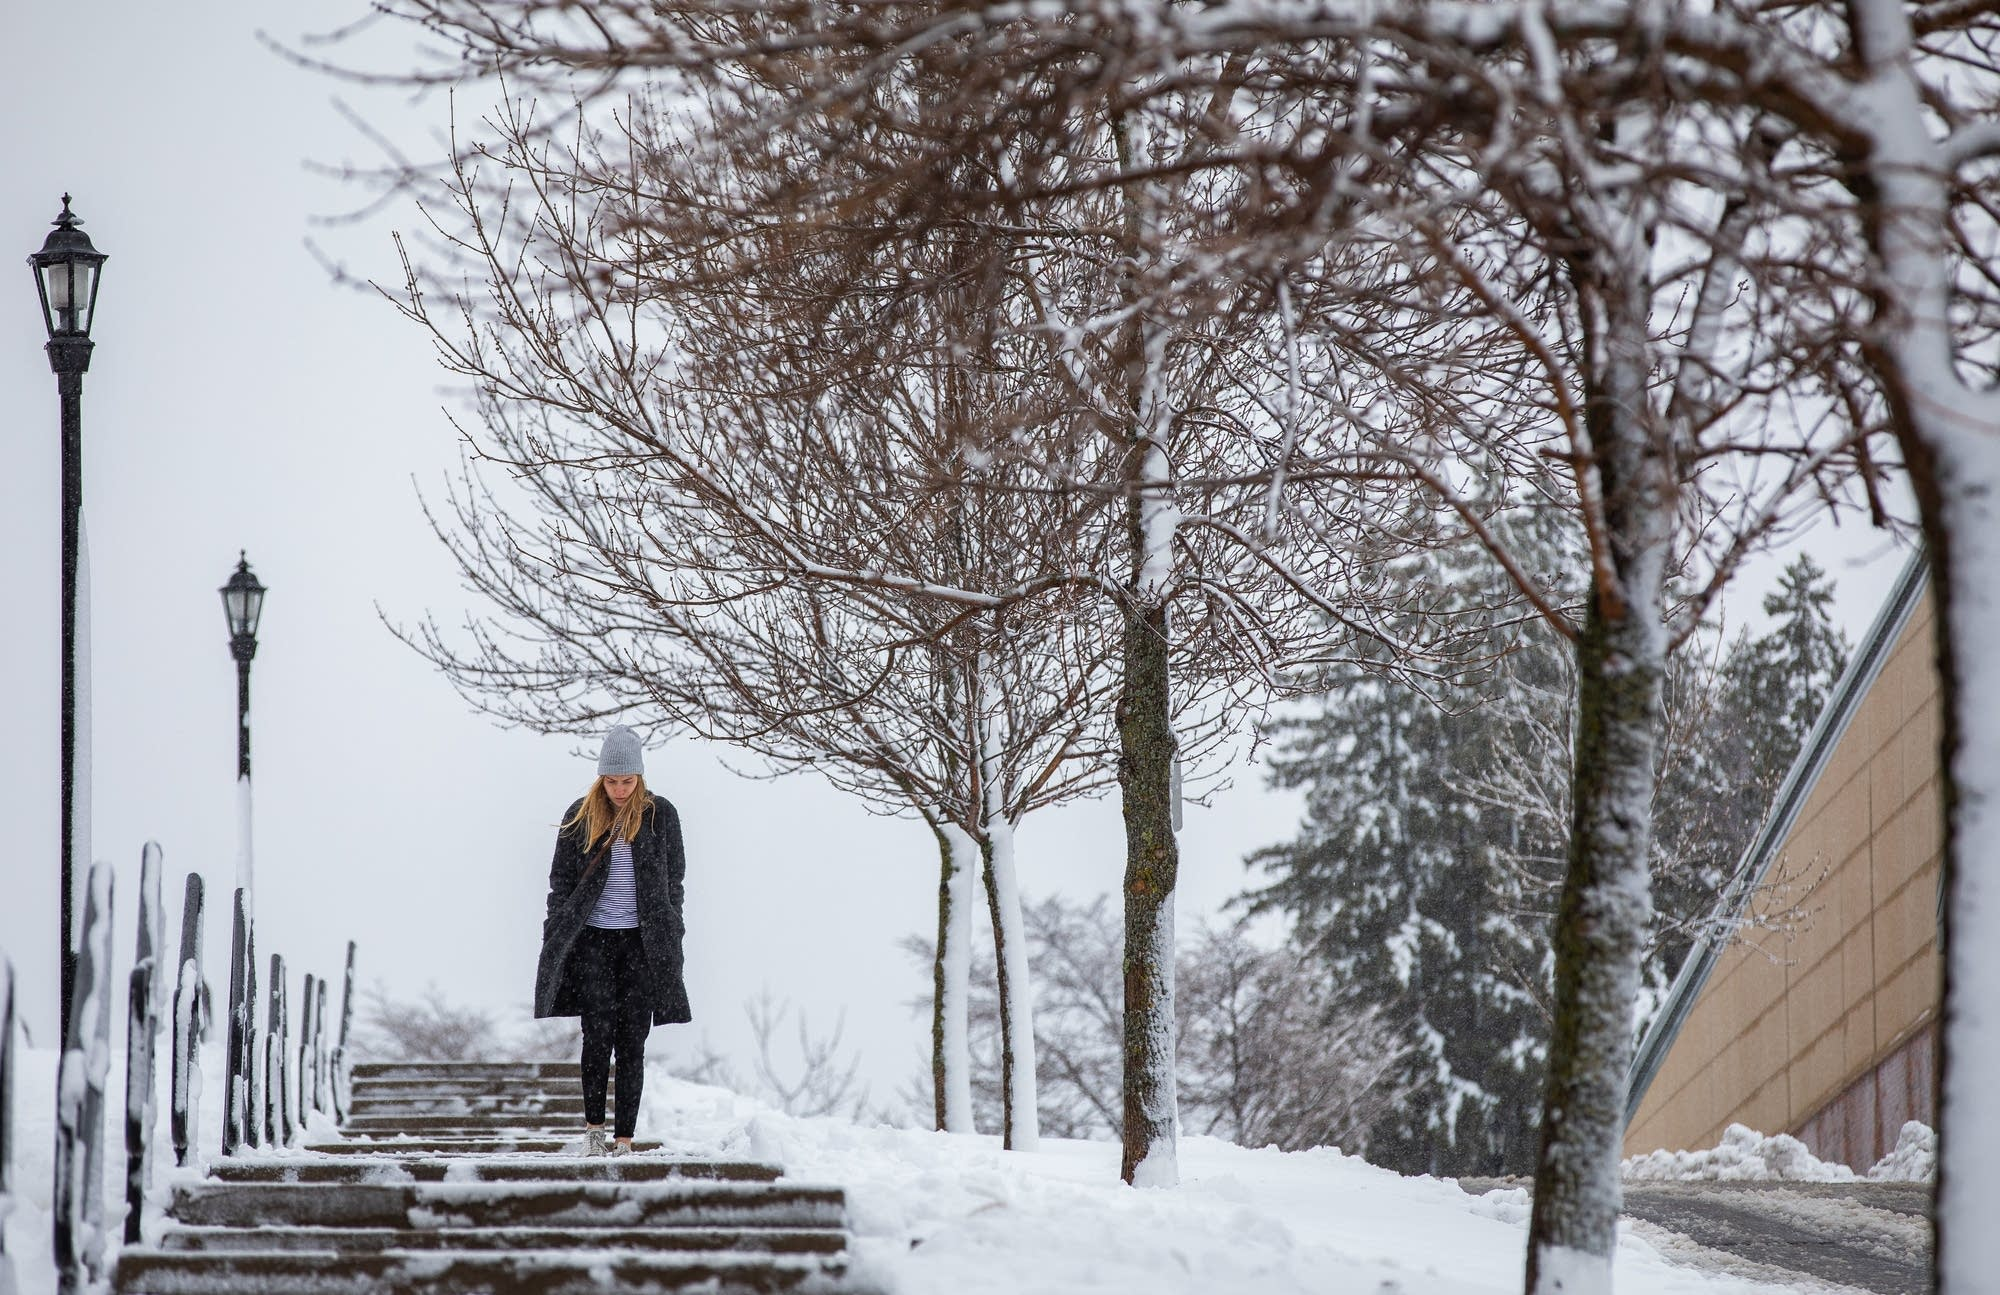 Hanna Dahlberg walks on snow-covered steps at College of St. Scholastica.